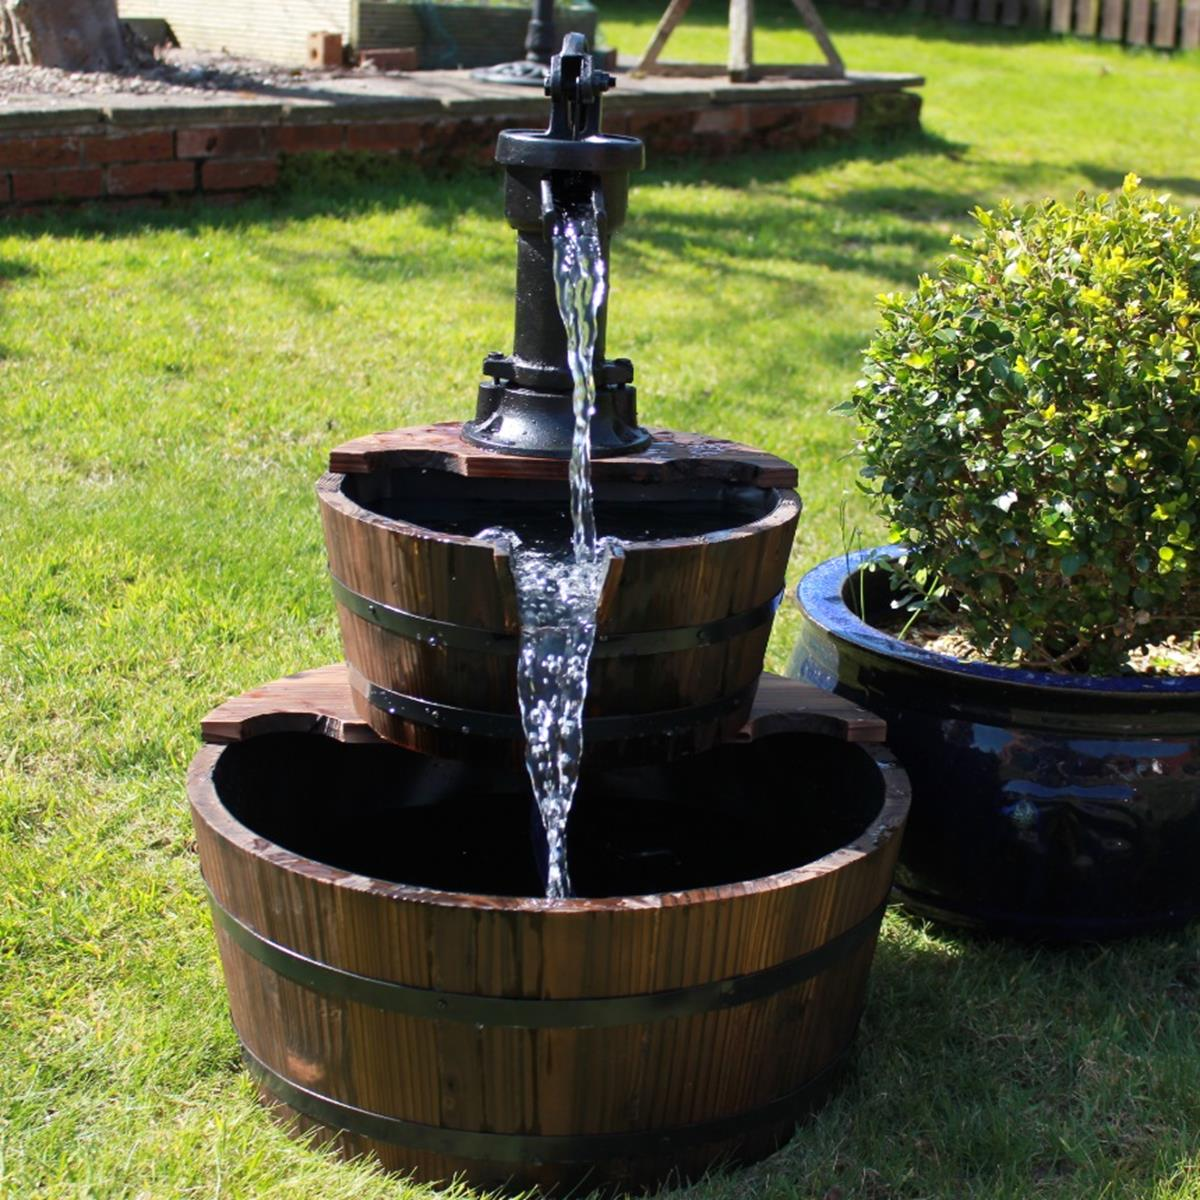 2 Tier Wooden Barrel Water Feature with Cast Iron Pump